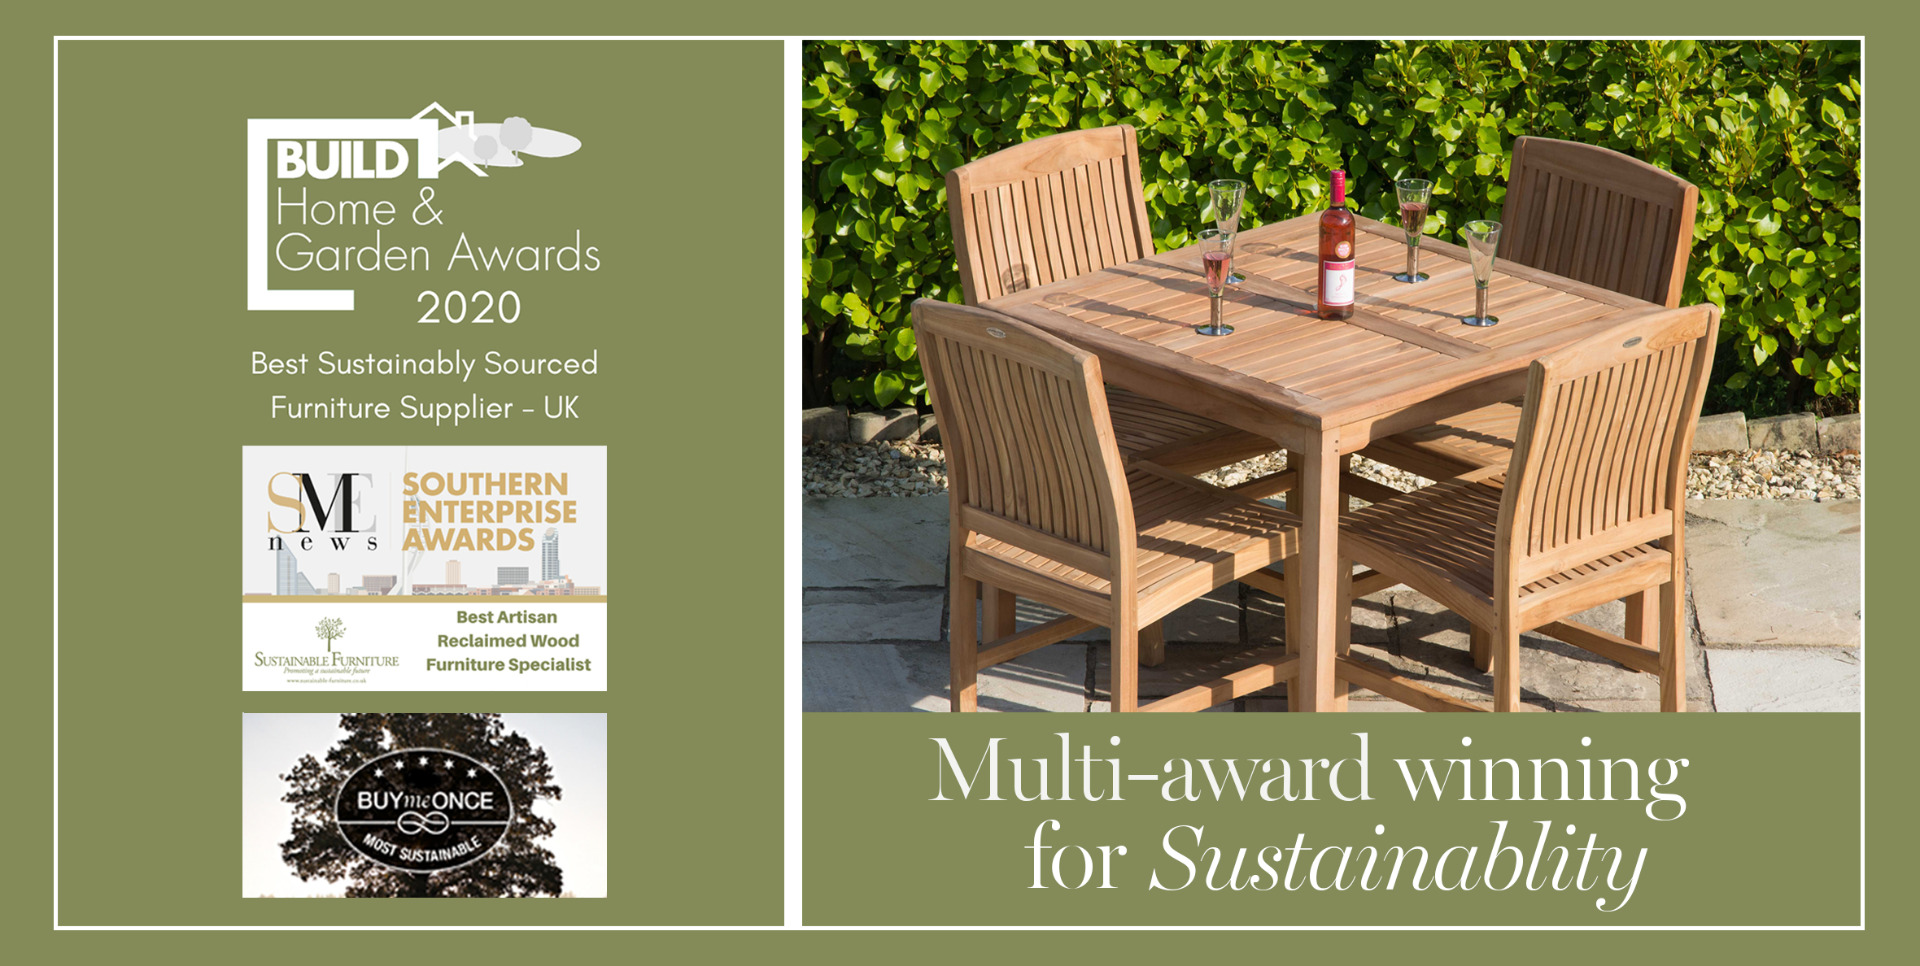 Reclaimed Wood Furniture Sustainable Furniture - Garden Furniture Clearance Edinburgh